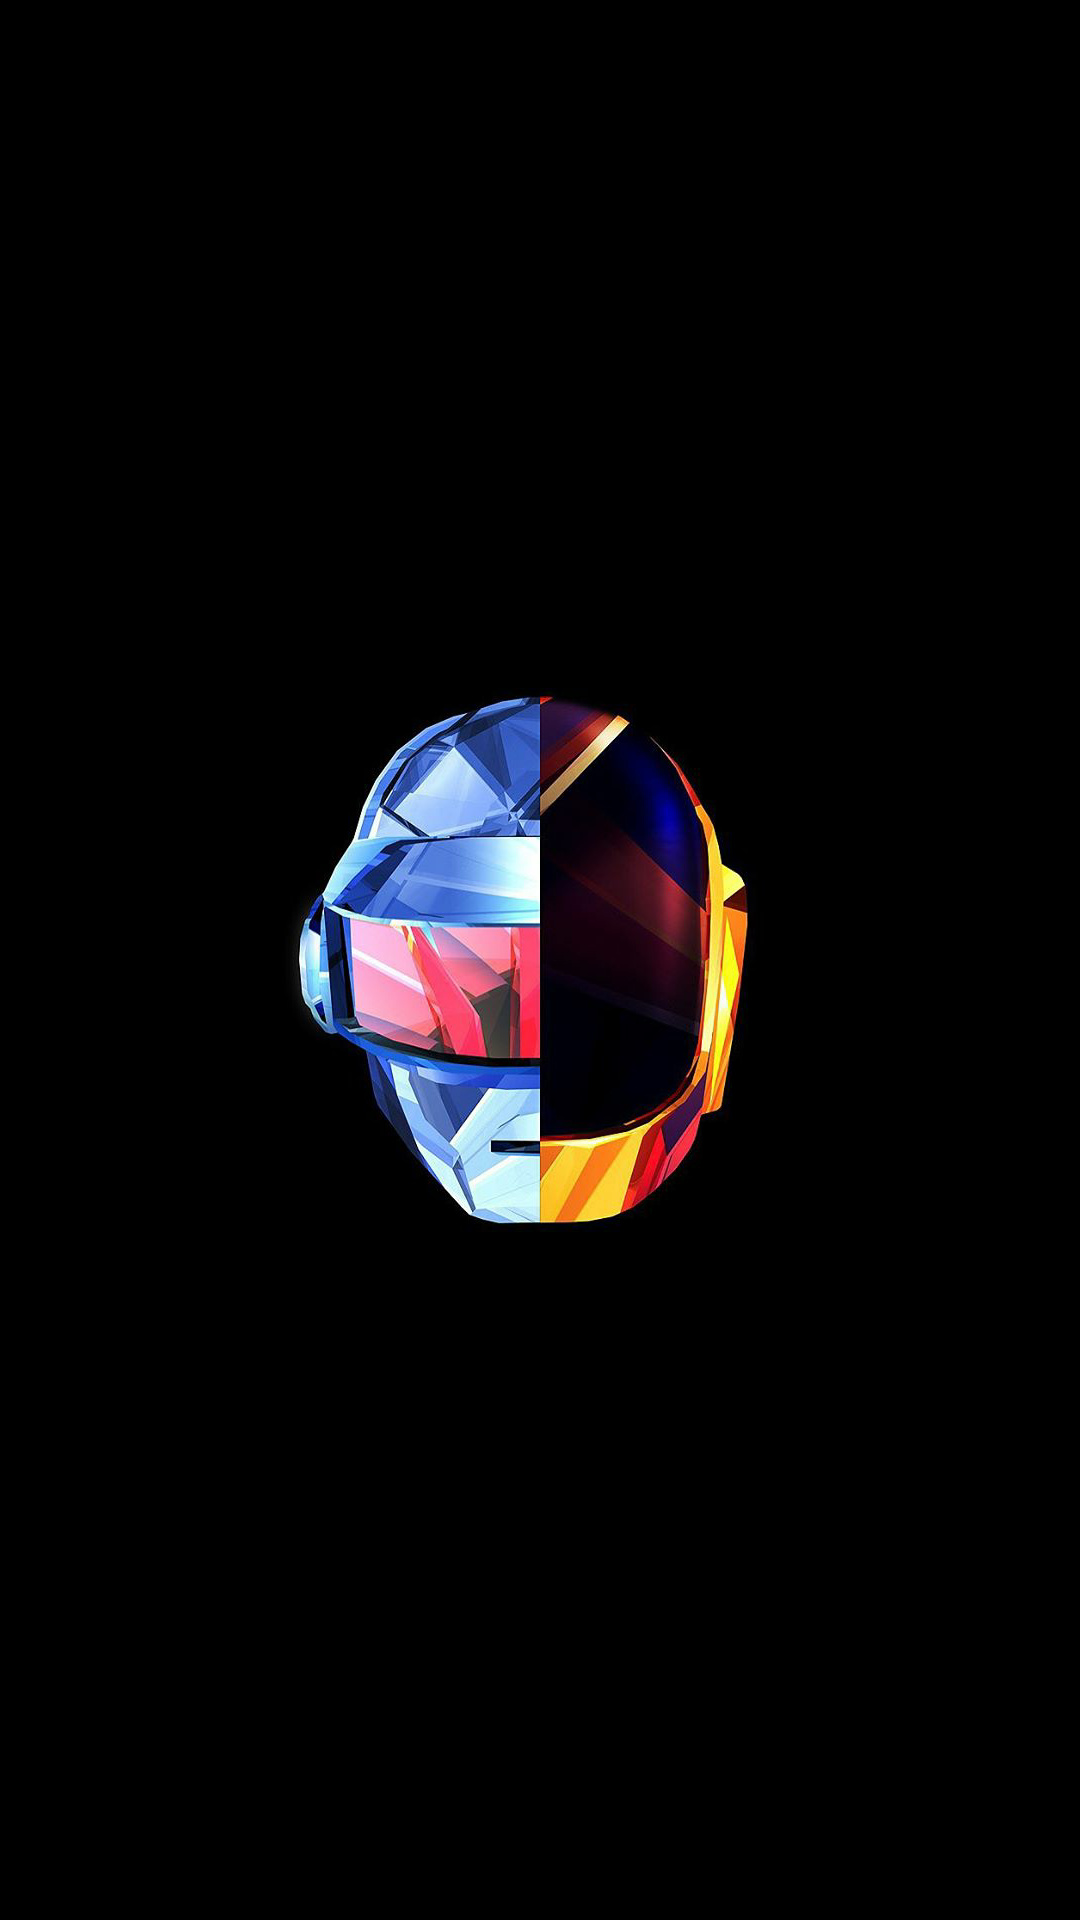 iPhone wallpaper daft punk solo Les 3Wallpapers iPhone du jour (19/03/2018)